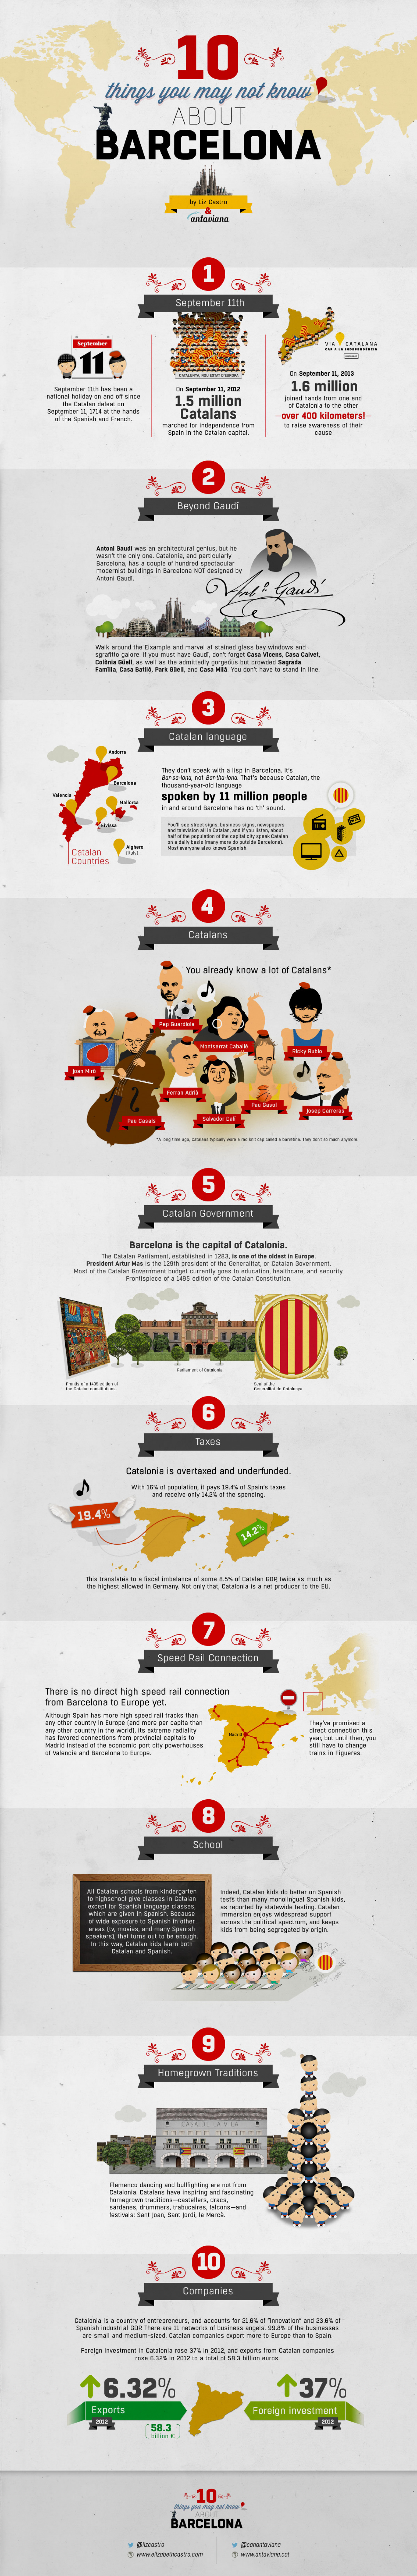 10 Things You May Not Know About Barcelona Infographic